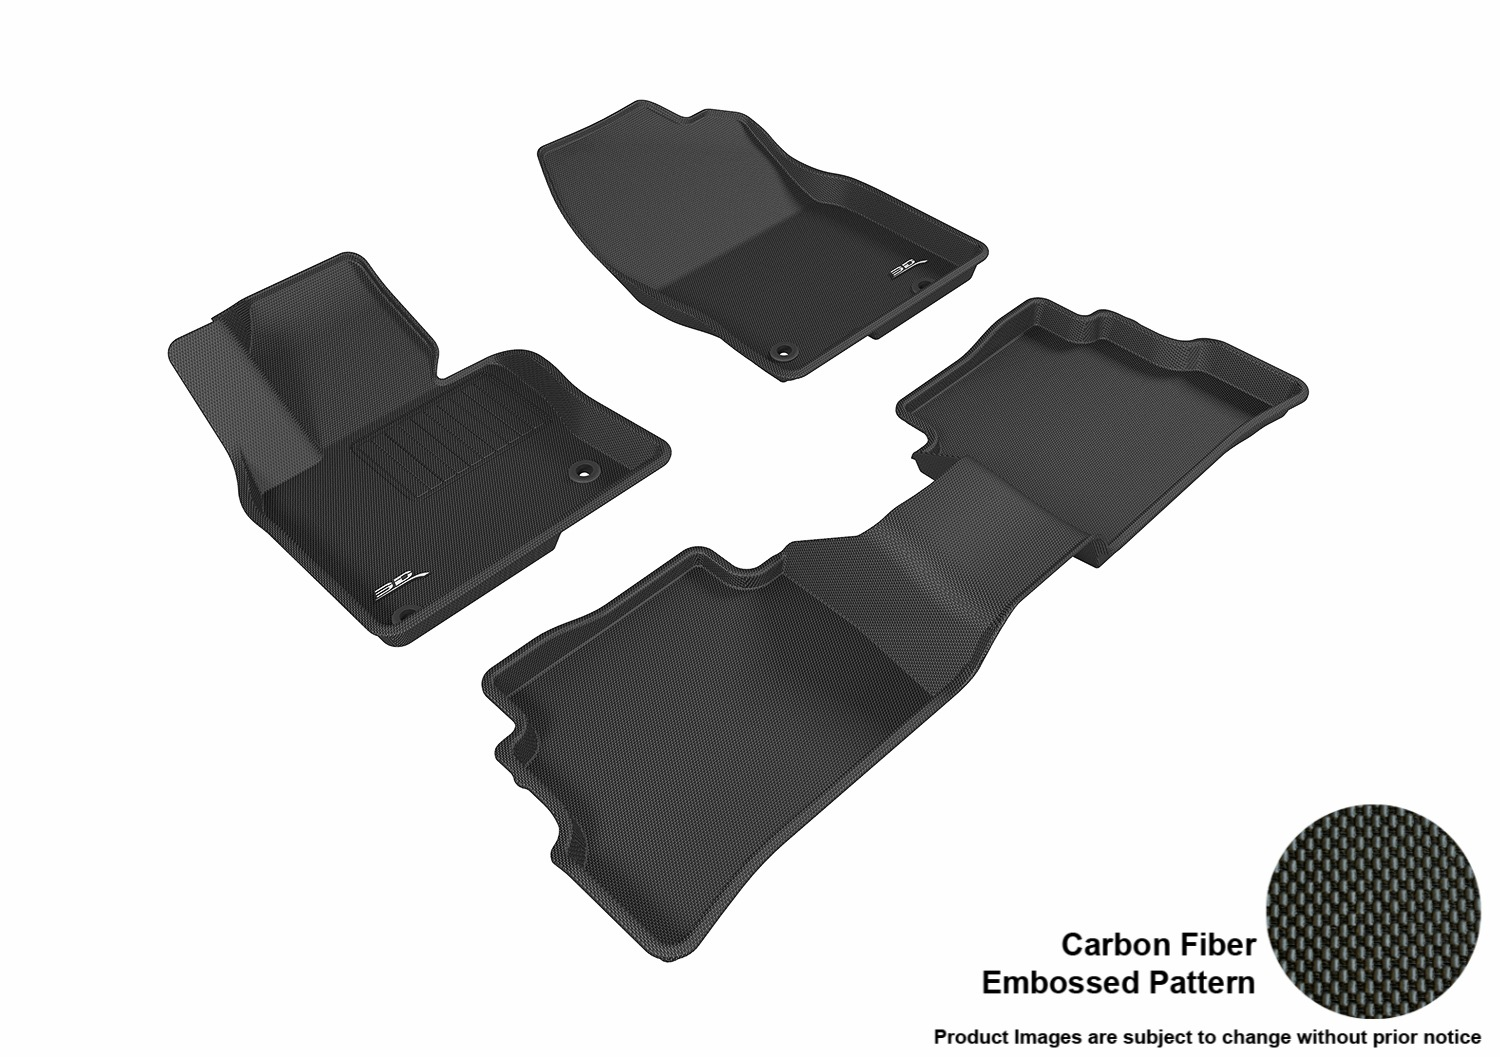 3D MAXpider L1MZ05811501 Gray All-Weather Floor Mat for Select Mazda Cx-5 Models Front Row